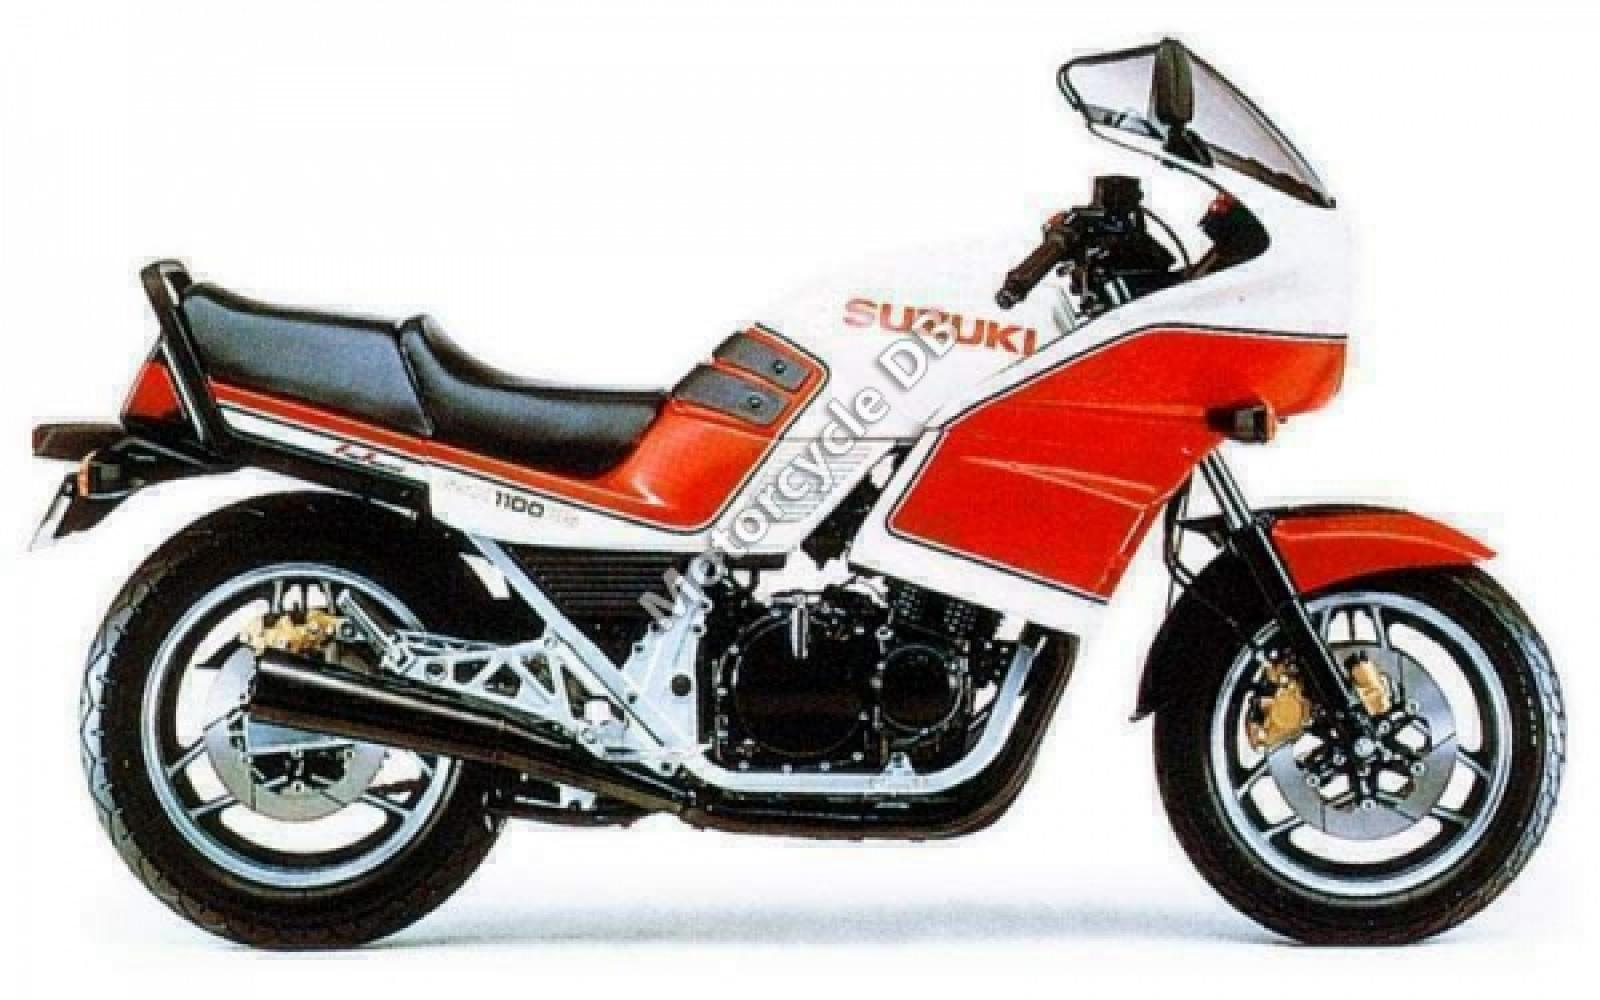 1986 Suzuki GSX 1100 EF (reduced effect) #4